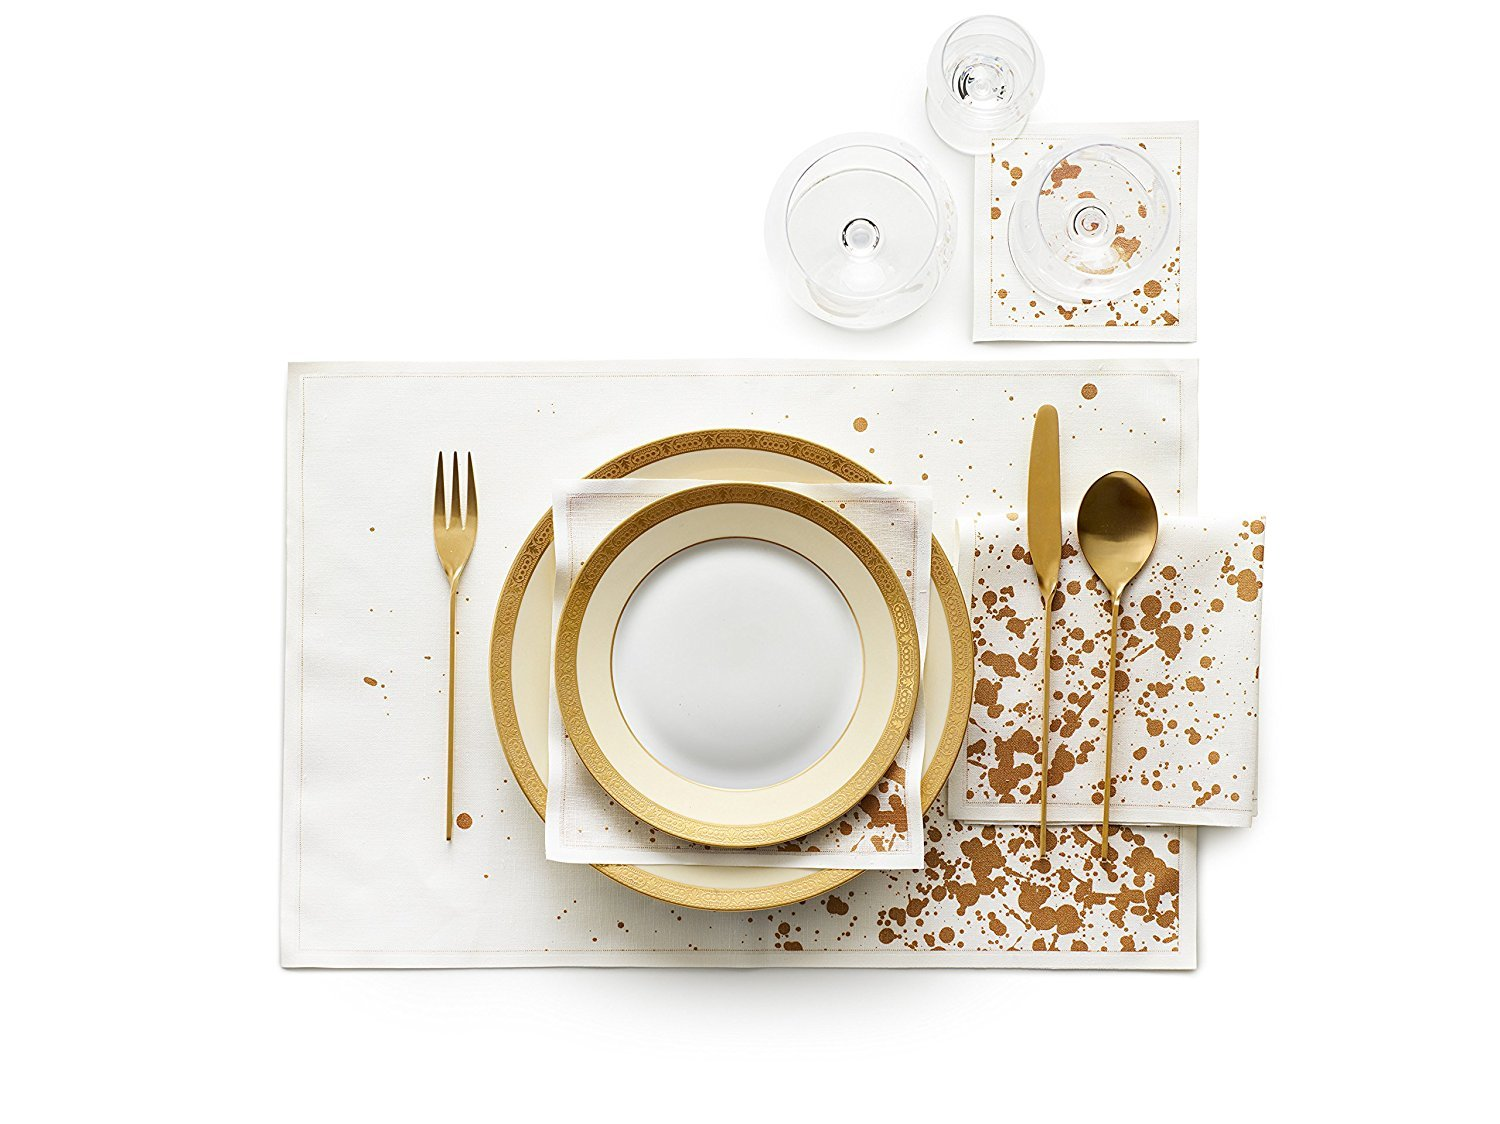 Linen Printed Placemat - 18.9 x 12.6 in - 6 units per roll - Golden Splash by MYdrap